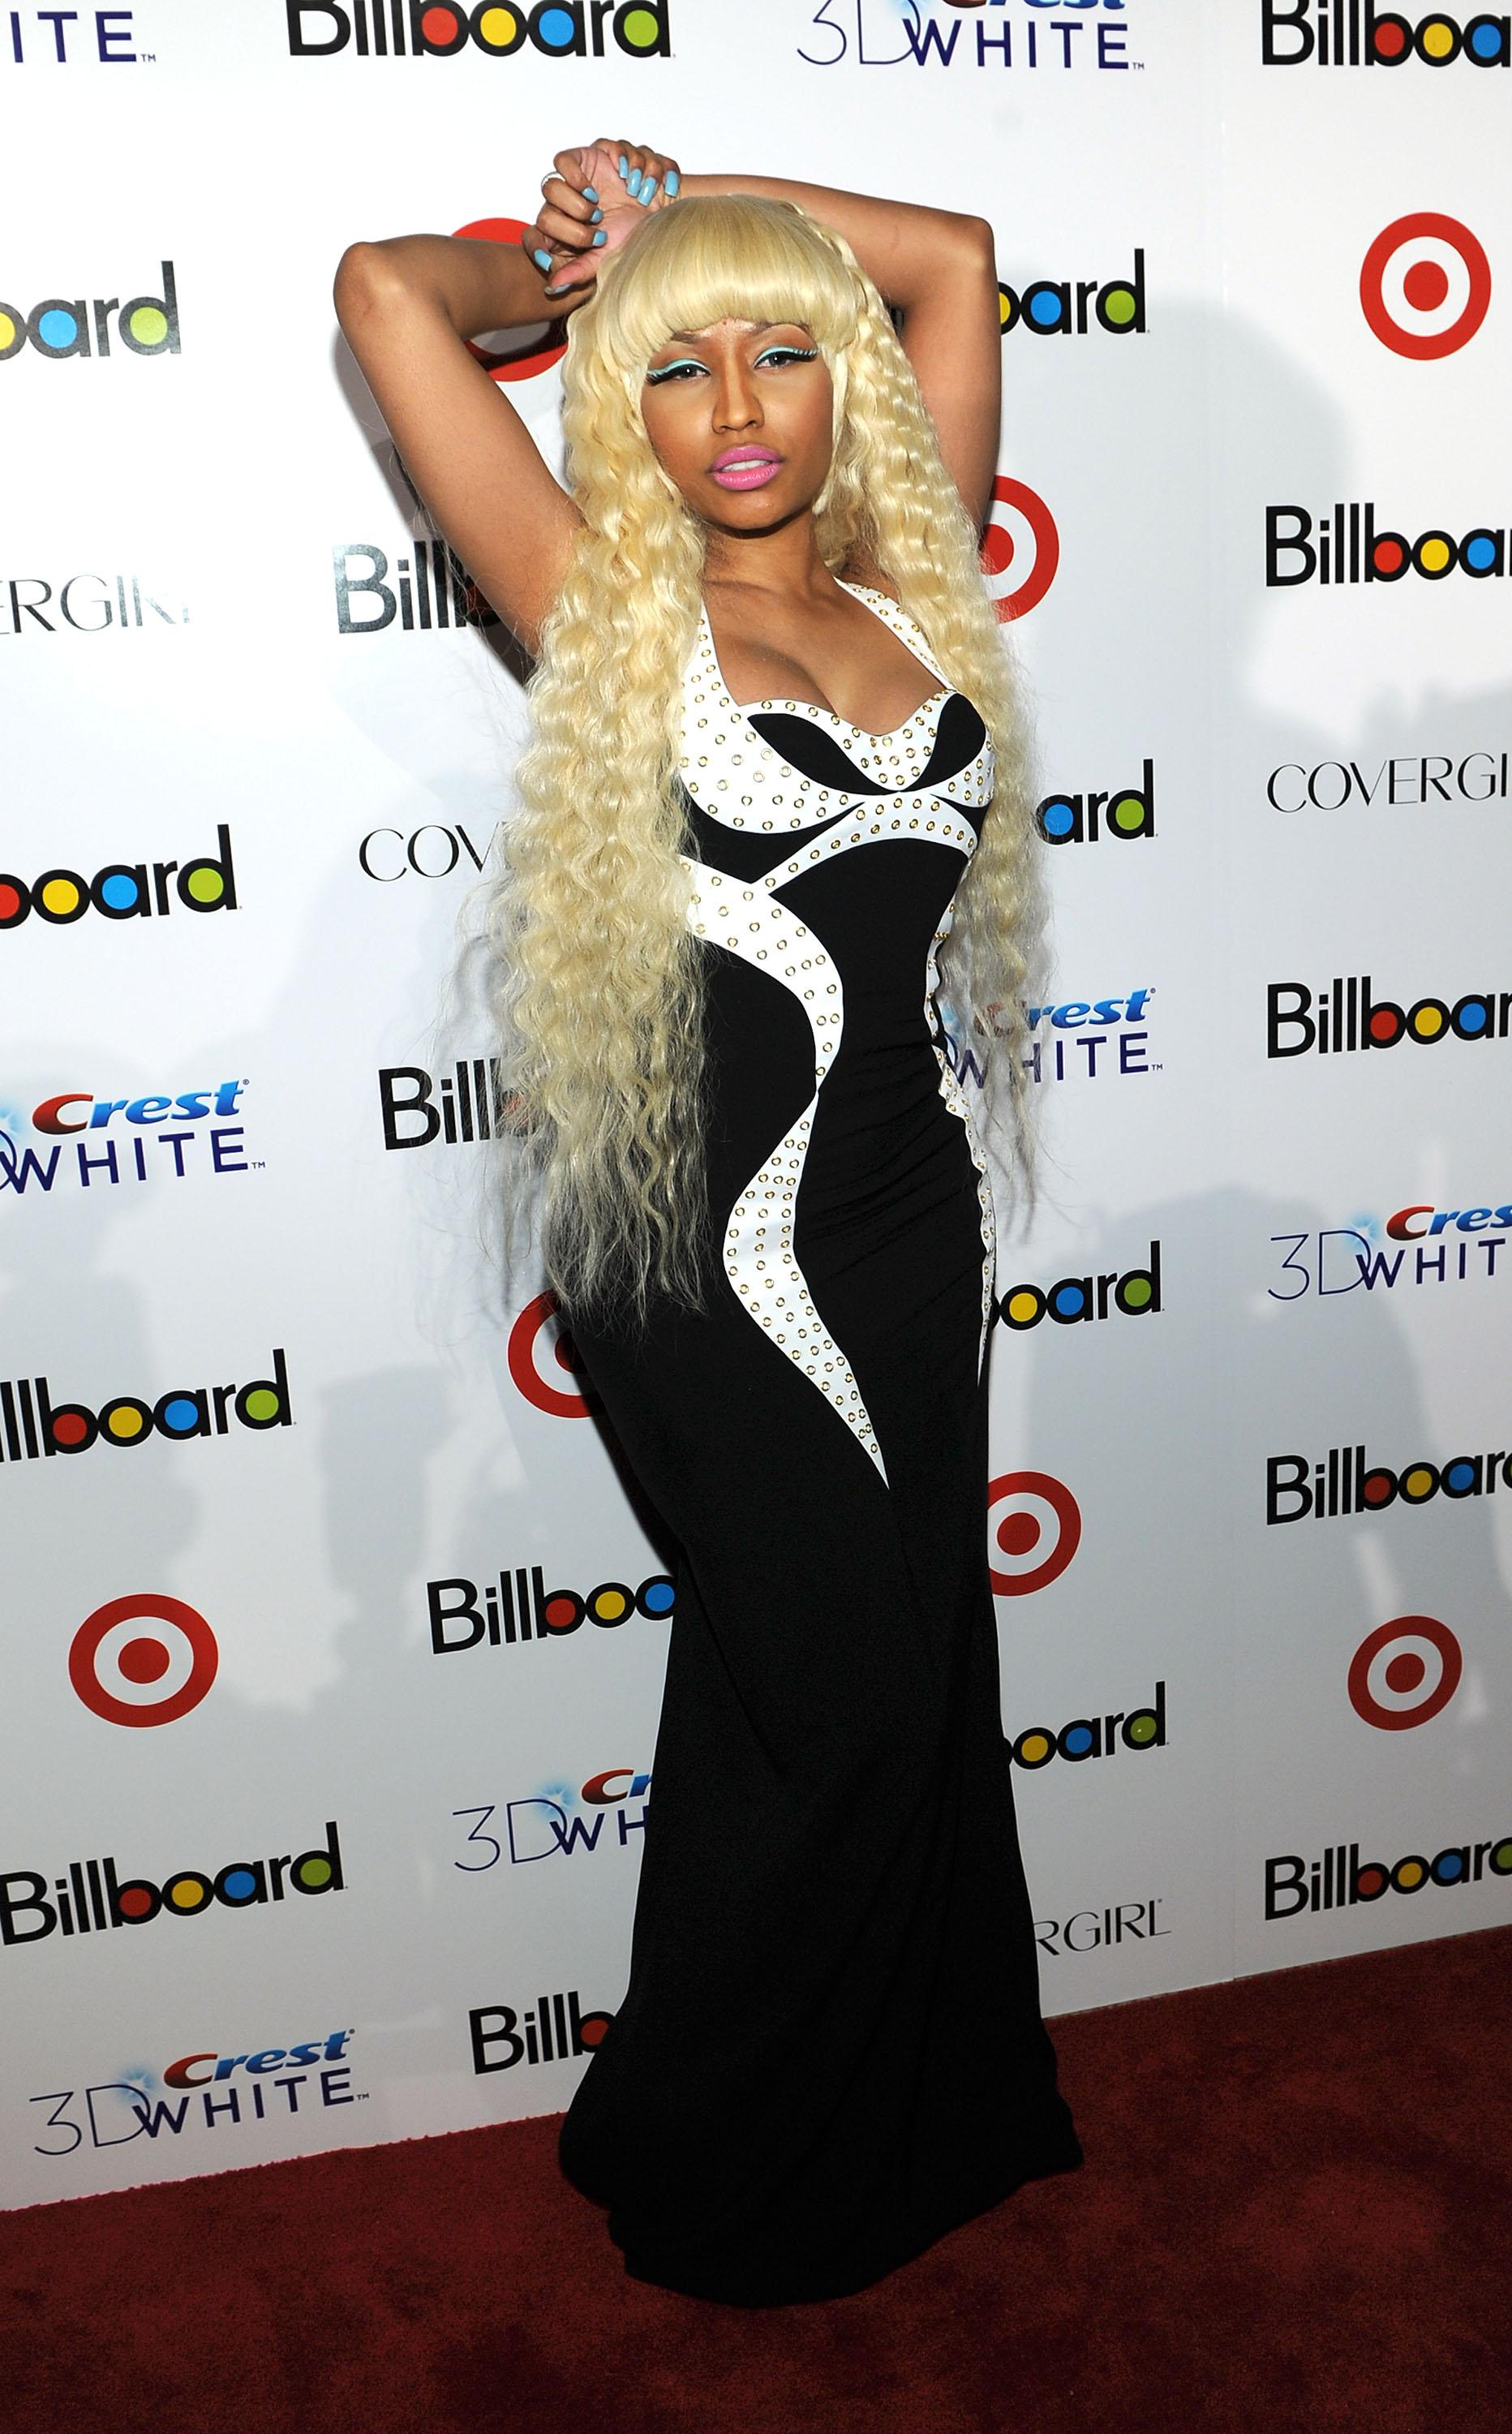 Billboard's Sixth Annual Women In Music Event